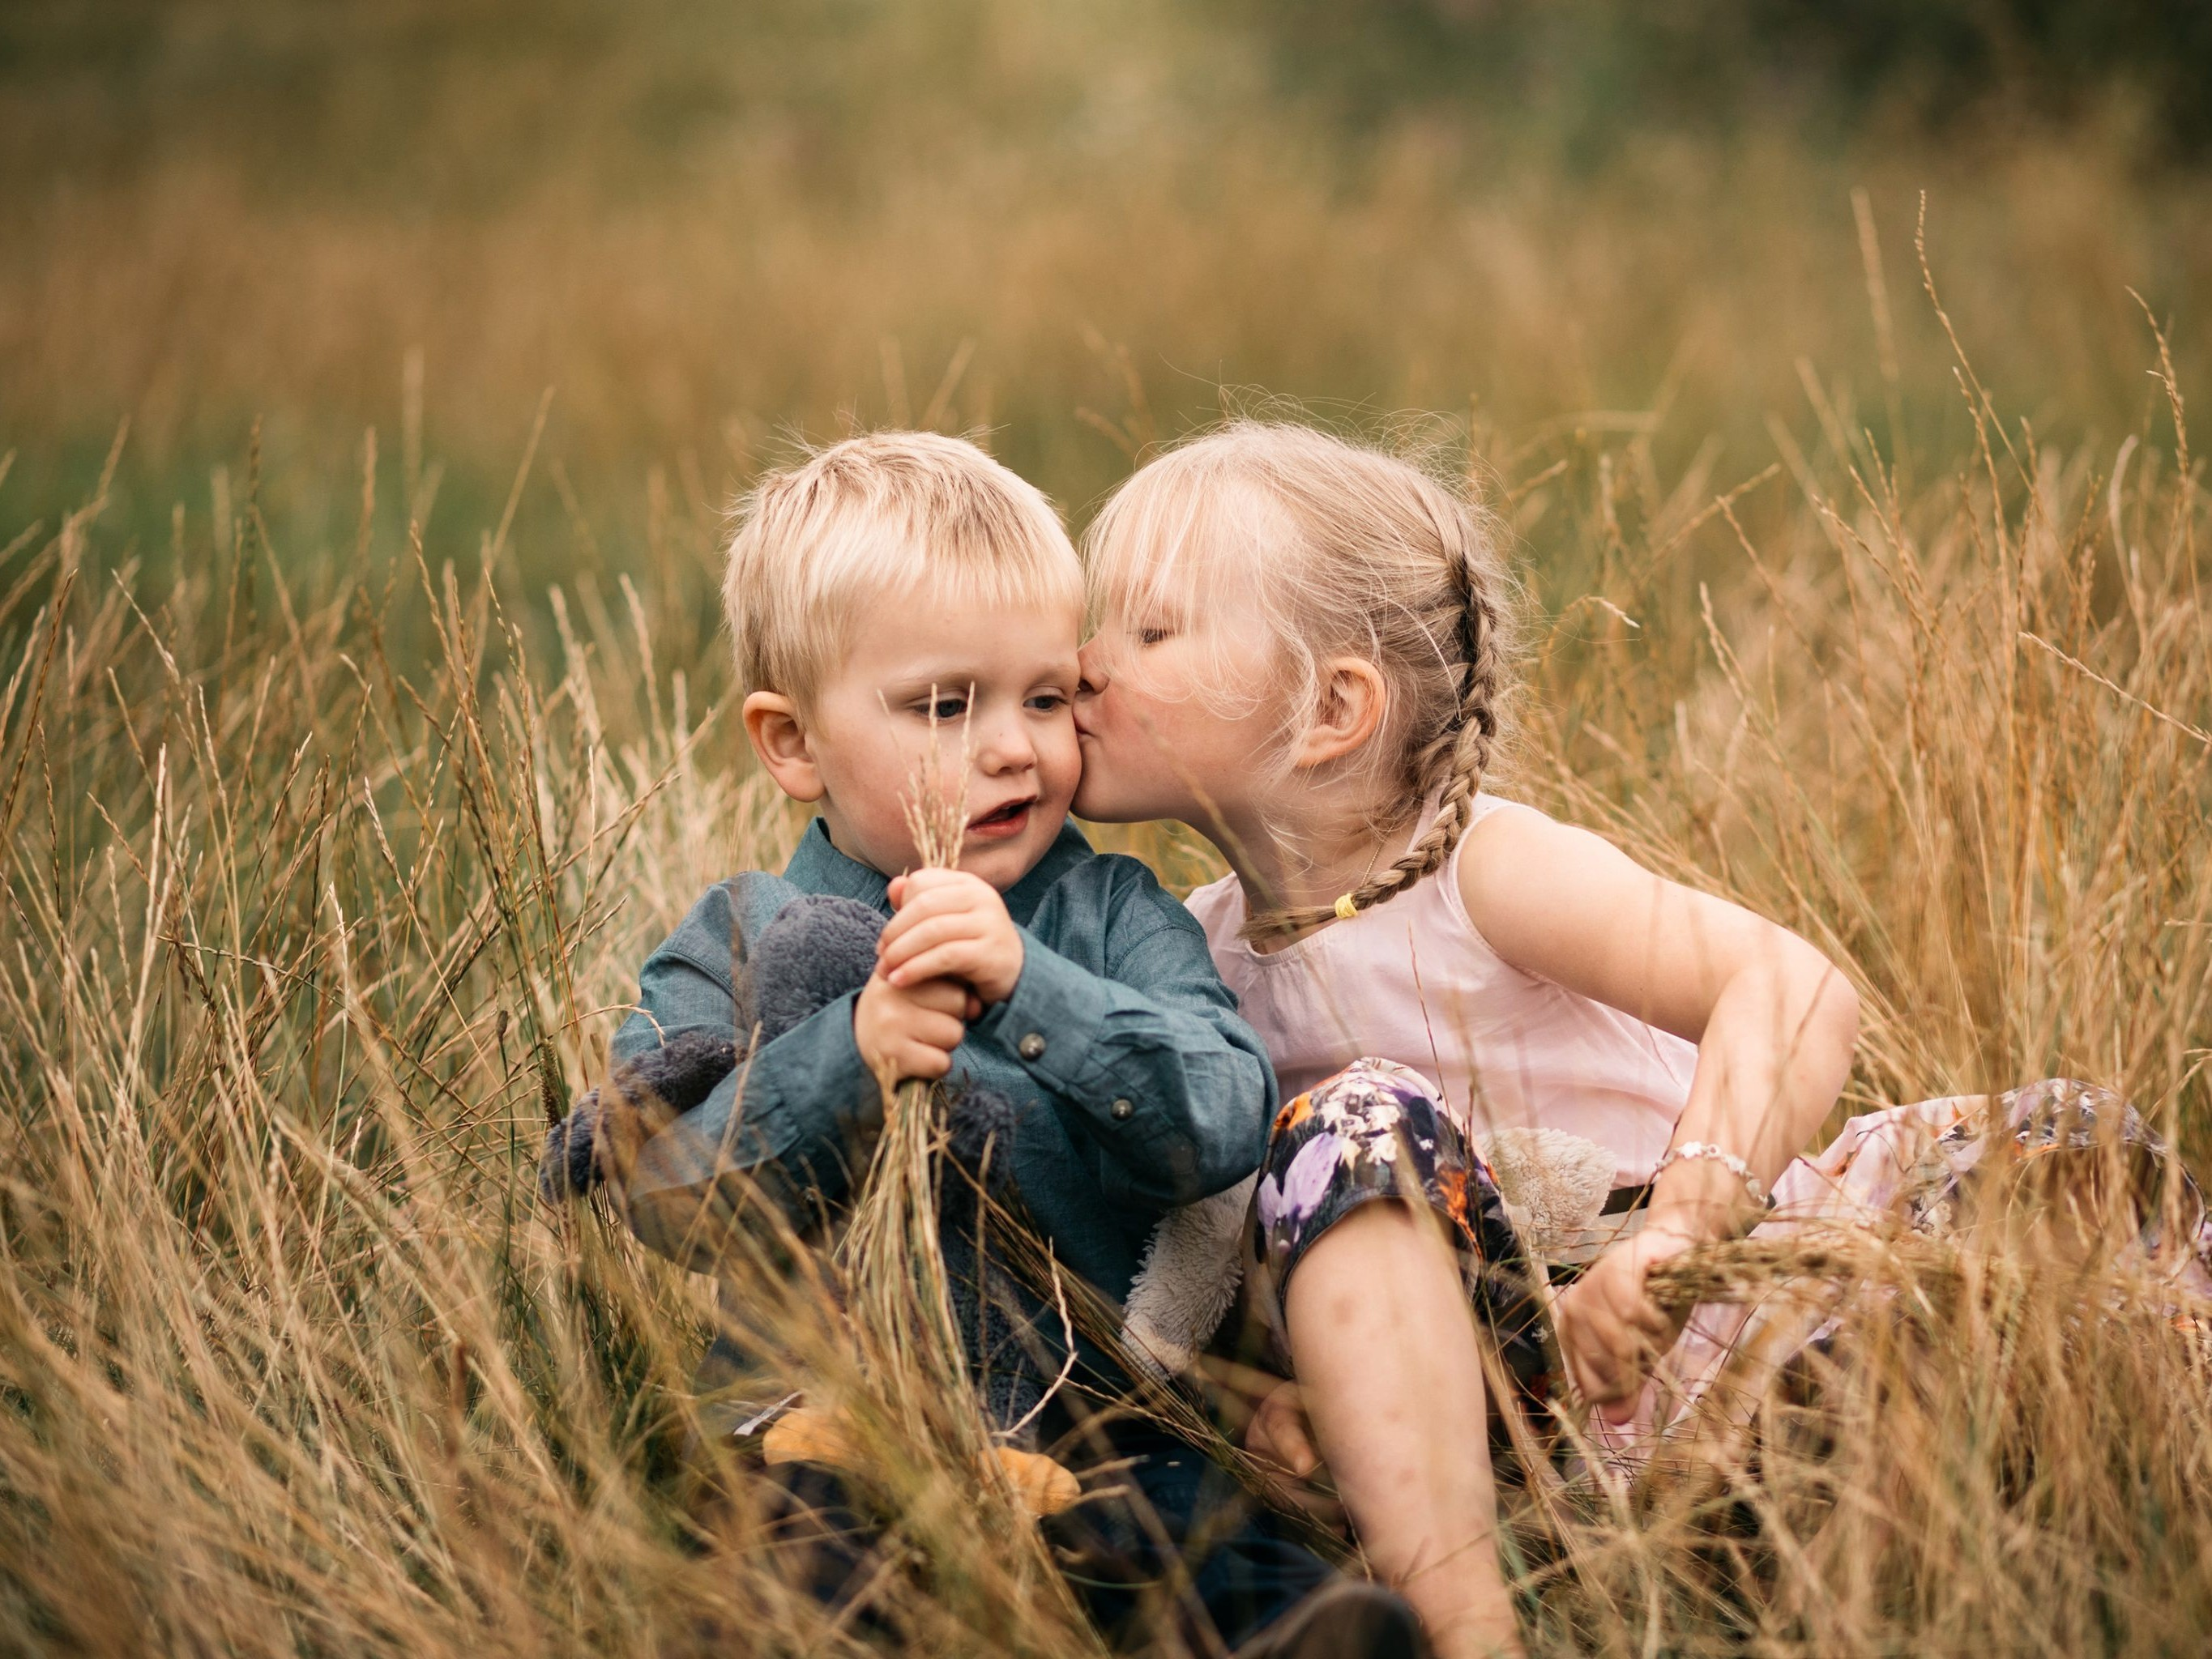 Lifestyle family photography, Love, Siblings, boy, girl, Share the love, Referral program